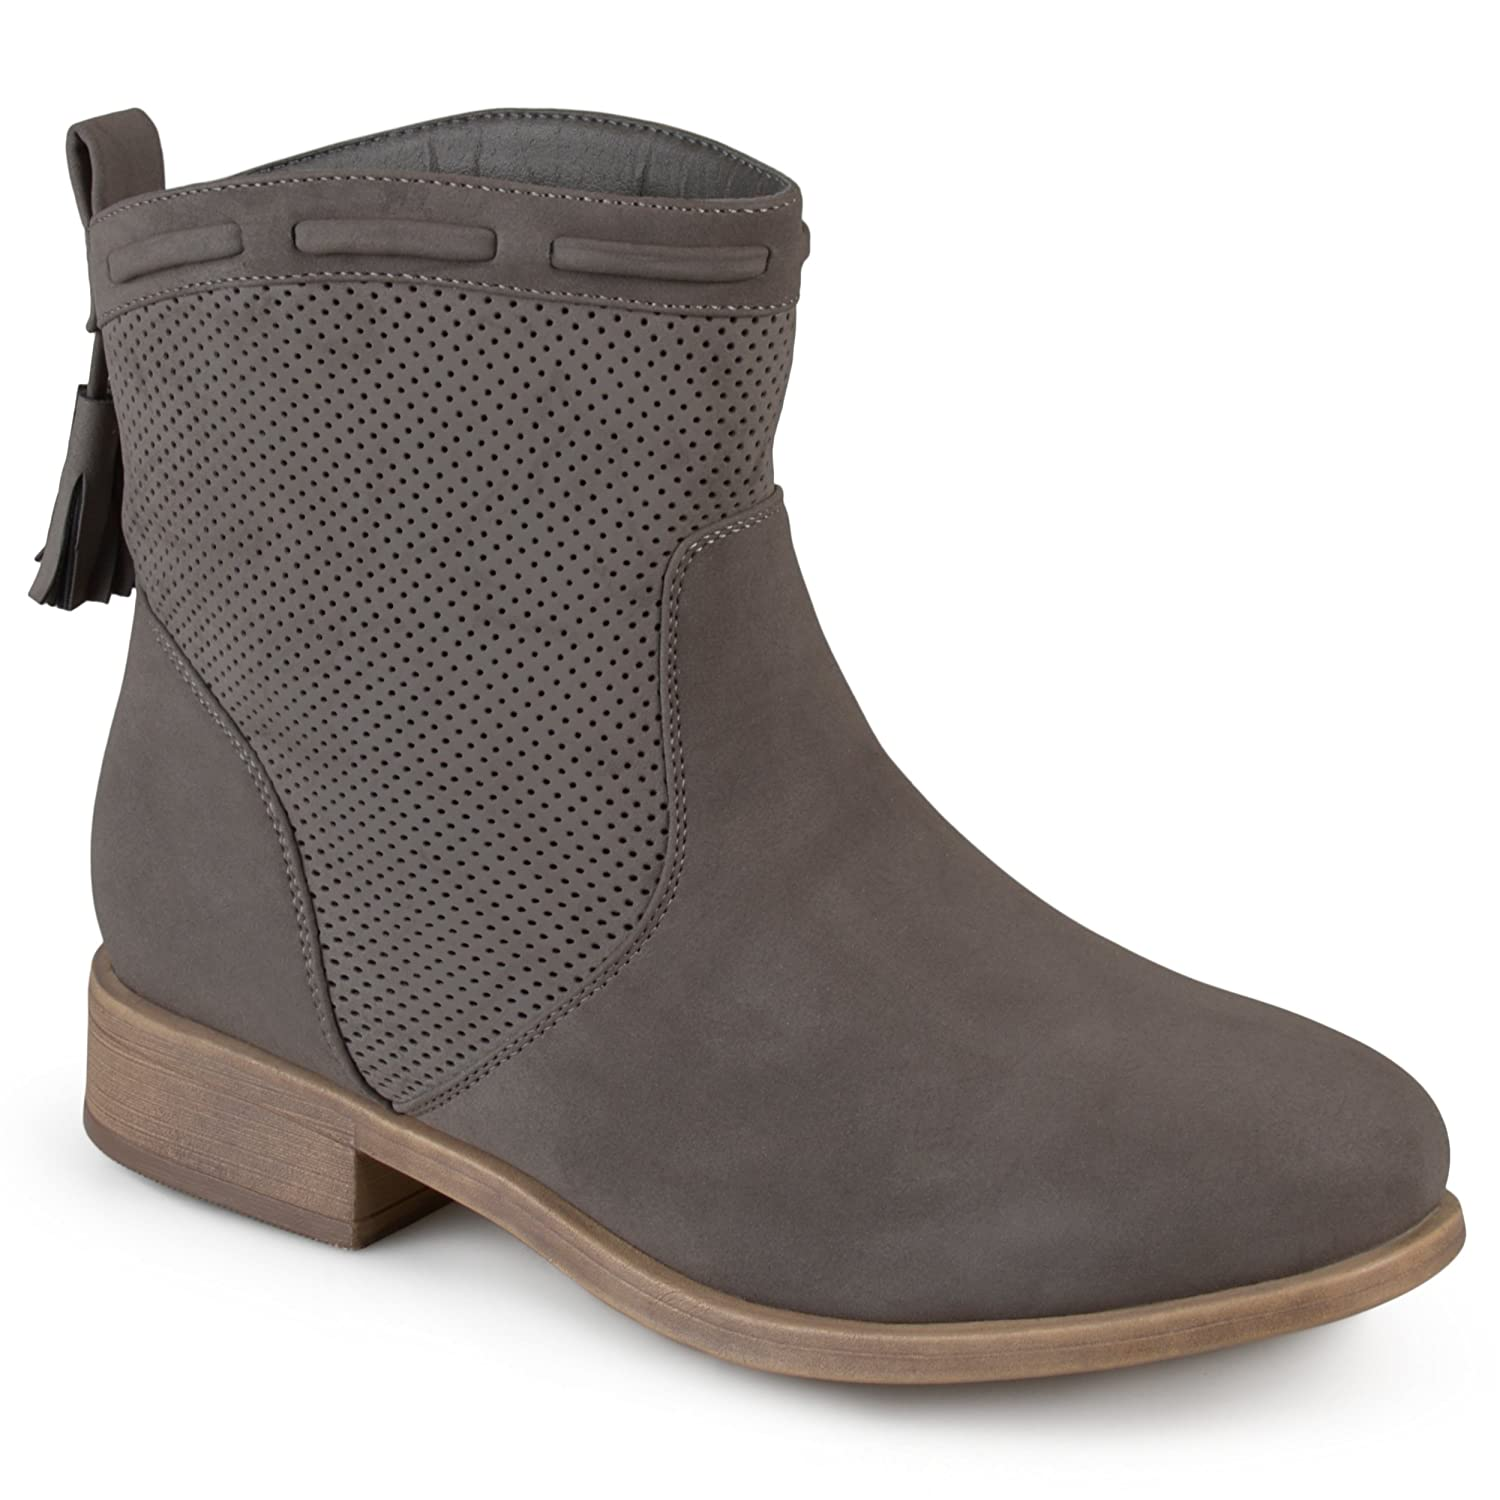 Journee Collection Womens Round Toe Tassled Boots